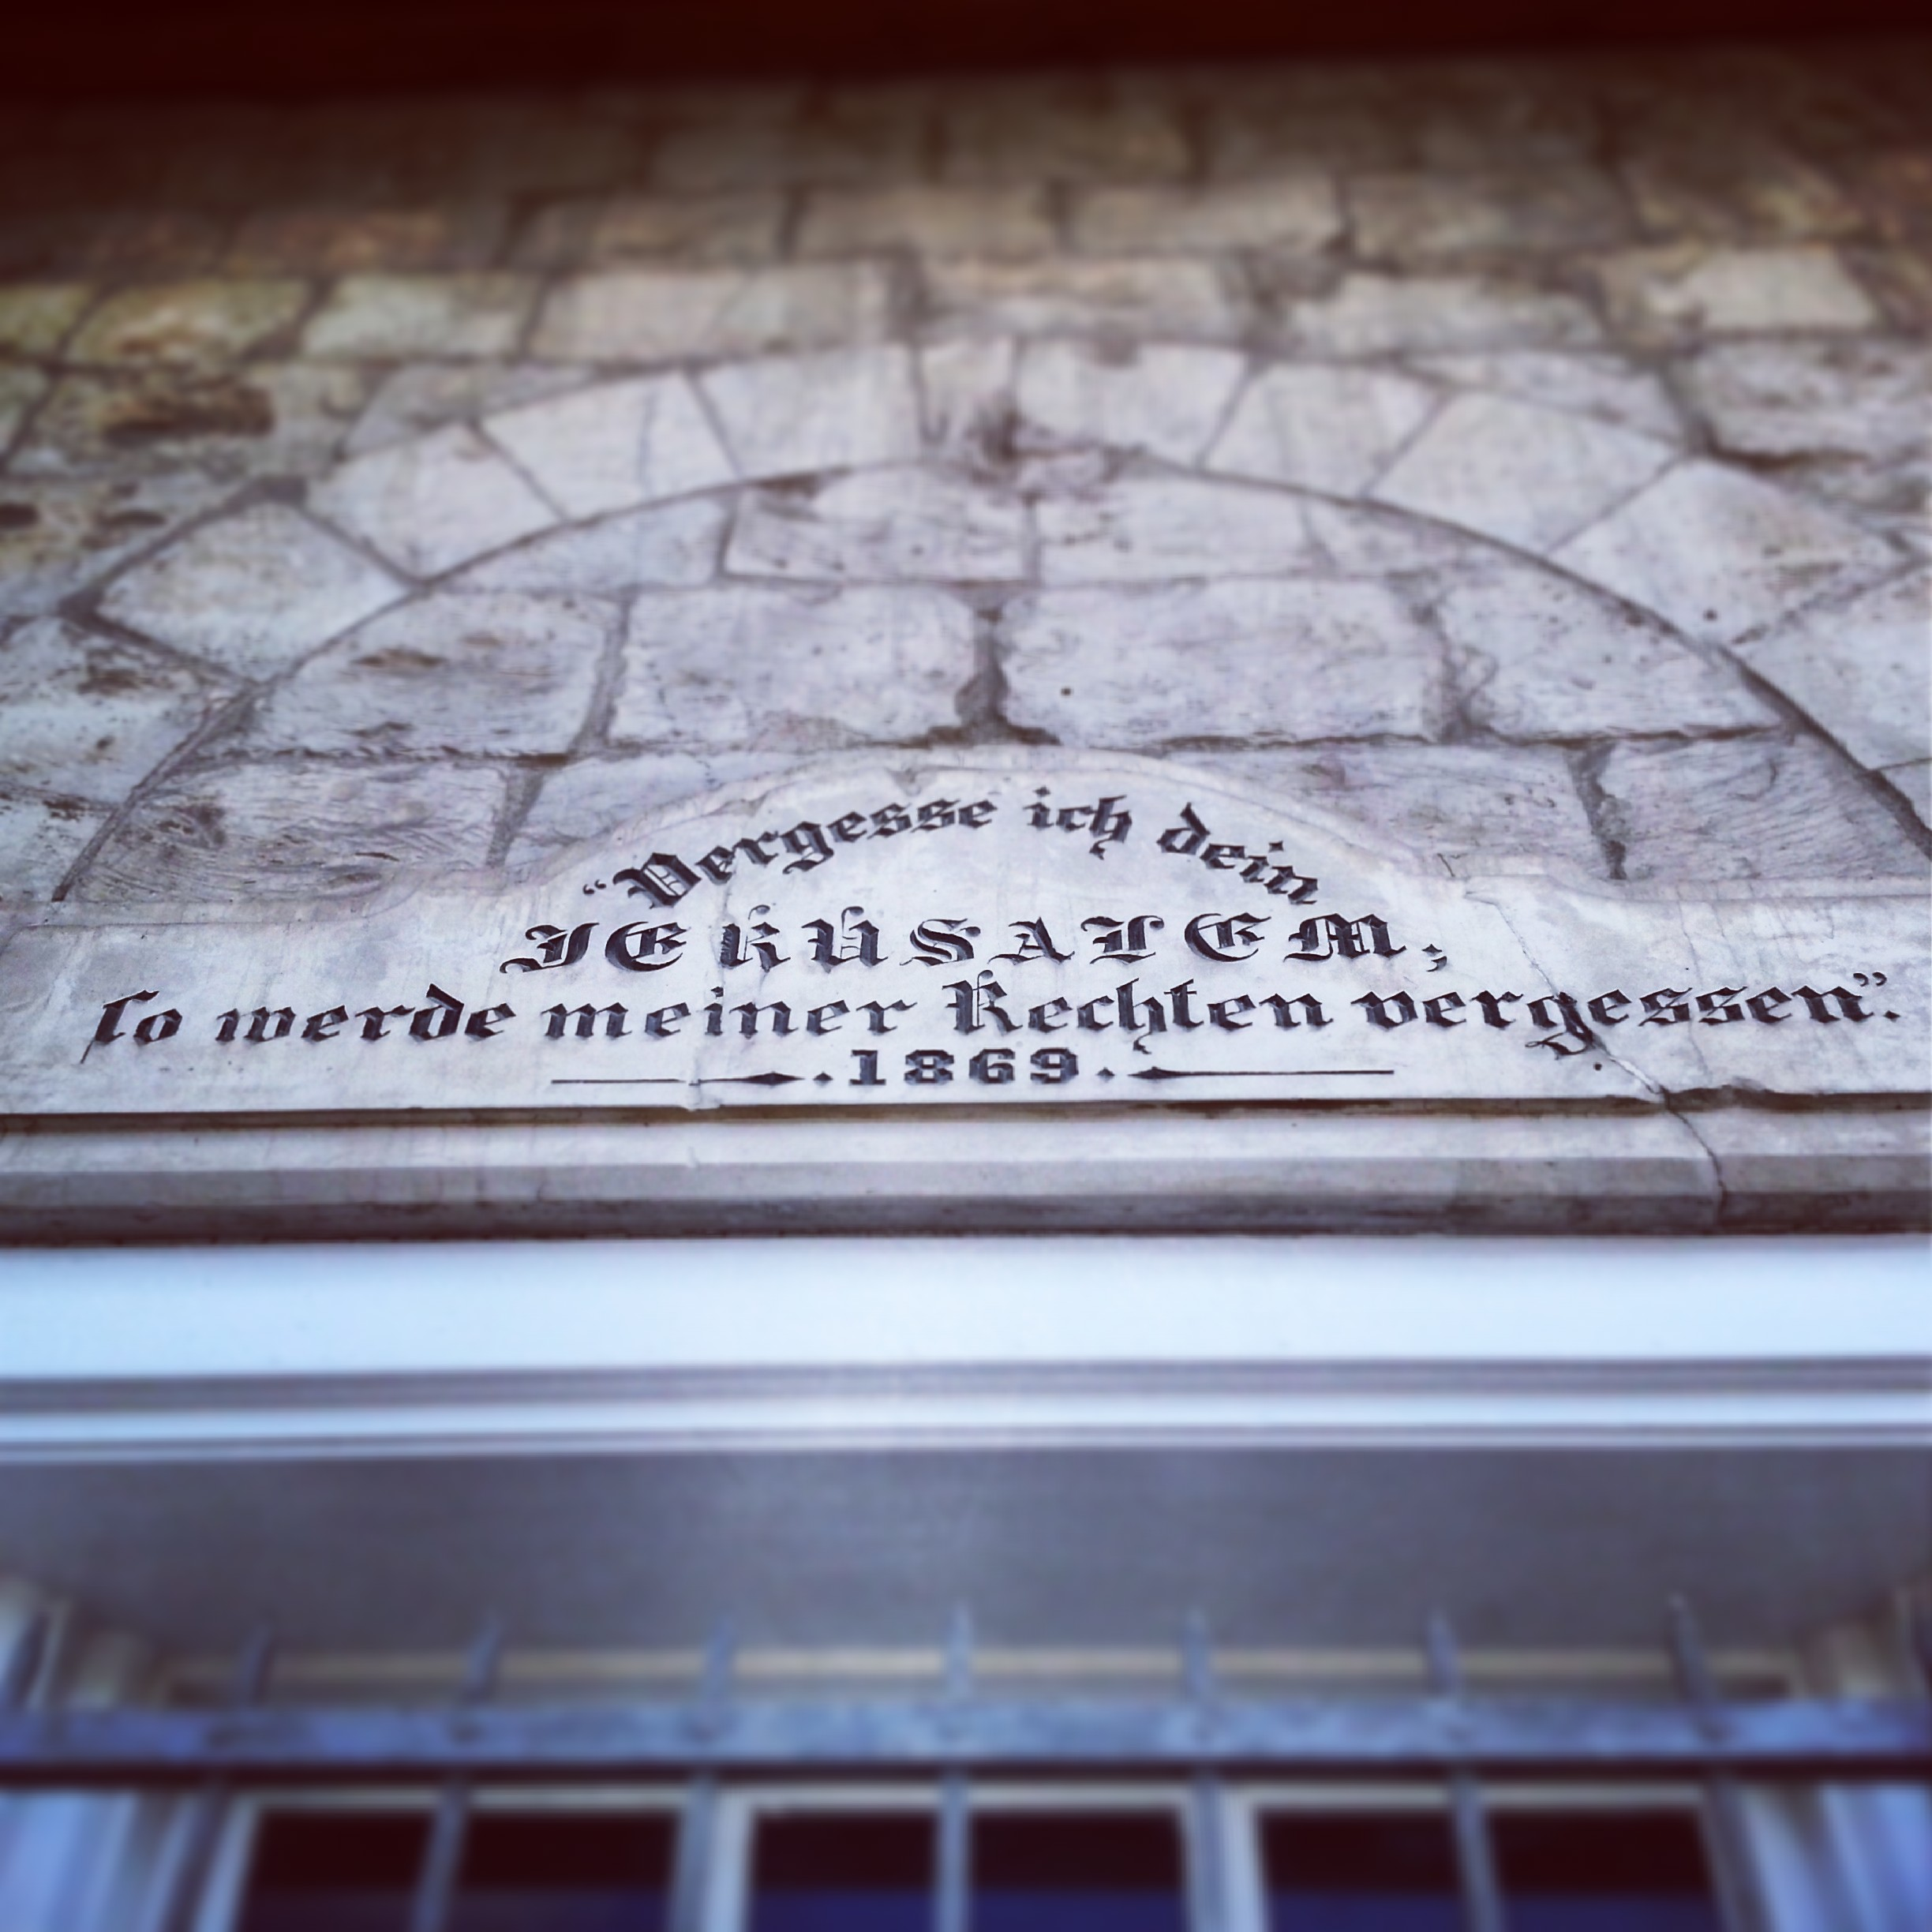 Biblical quotation on the lintel of a building in the German Colony, Haifa